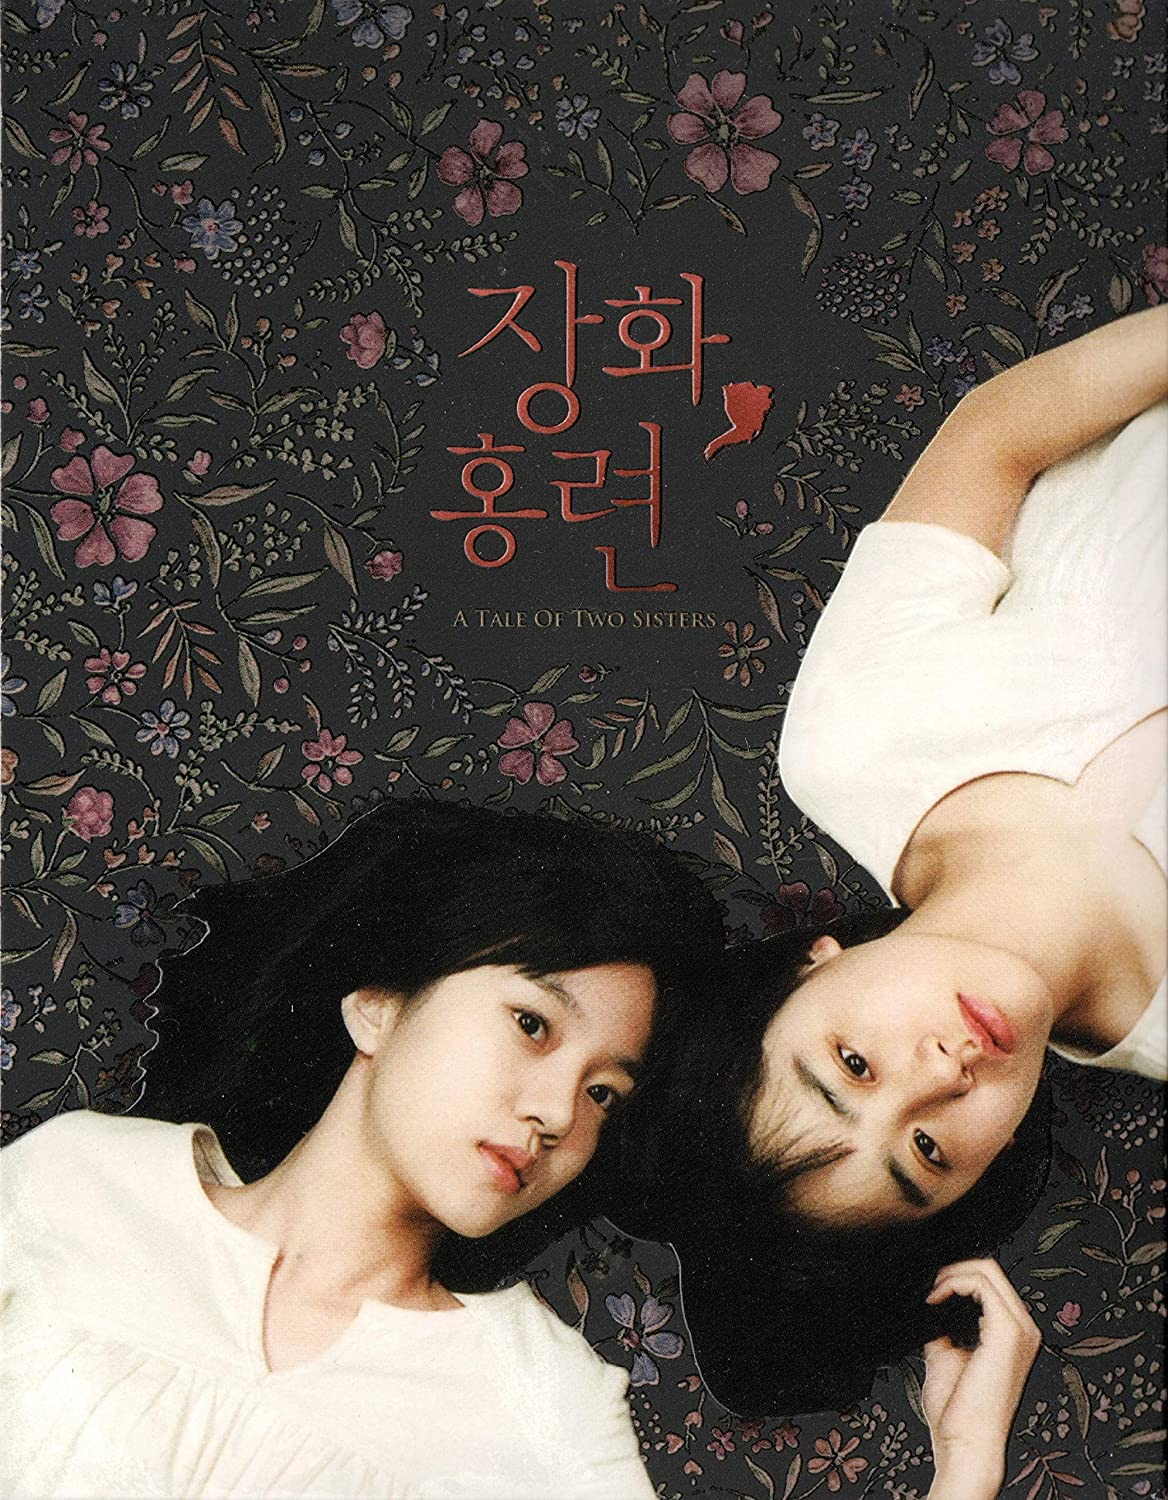 a tale of two sisters english subtitles free download